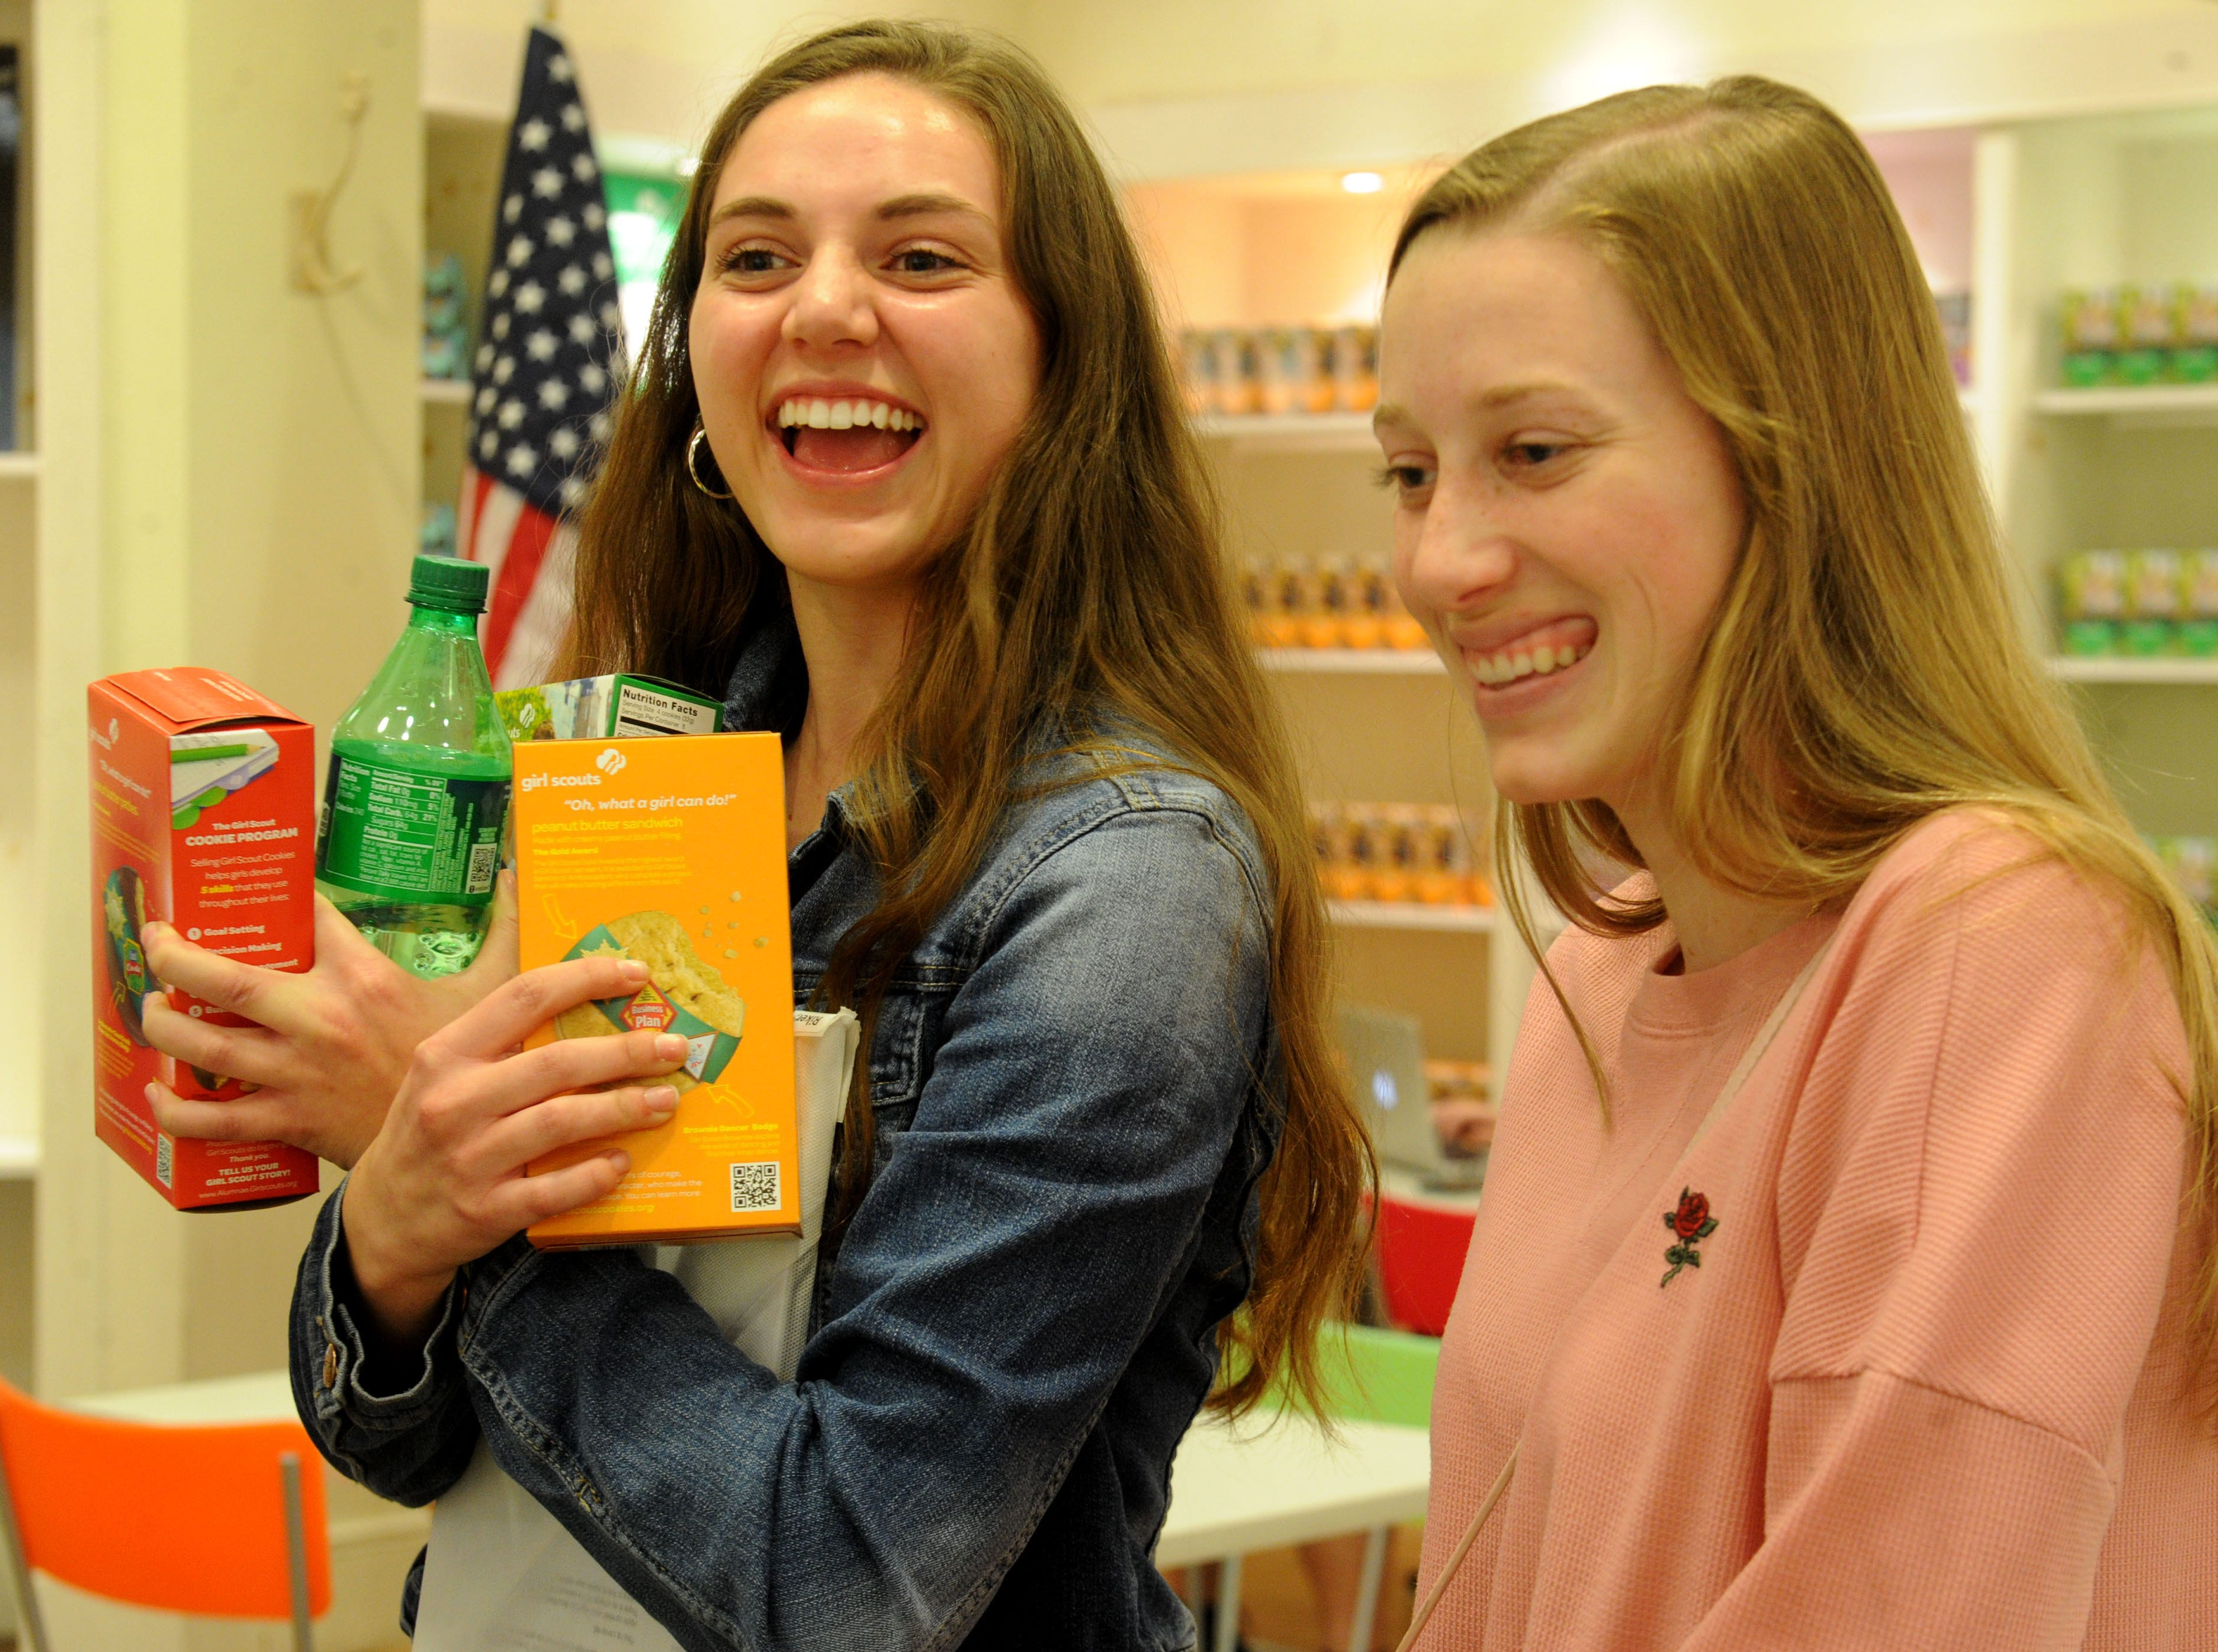 Lizzi Raker, left, and Kaylie Scofield buy three boxes of Girl Scout cookies  at the store in The Oaks mall.